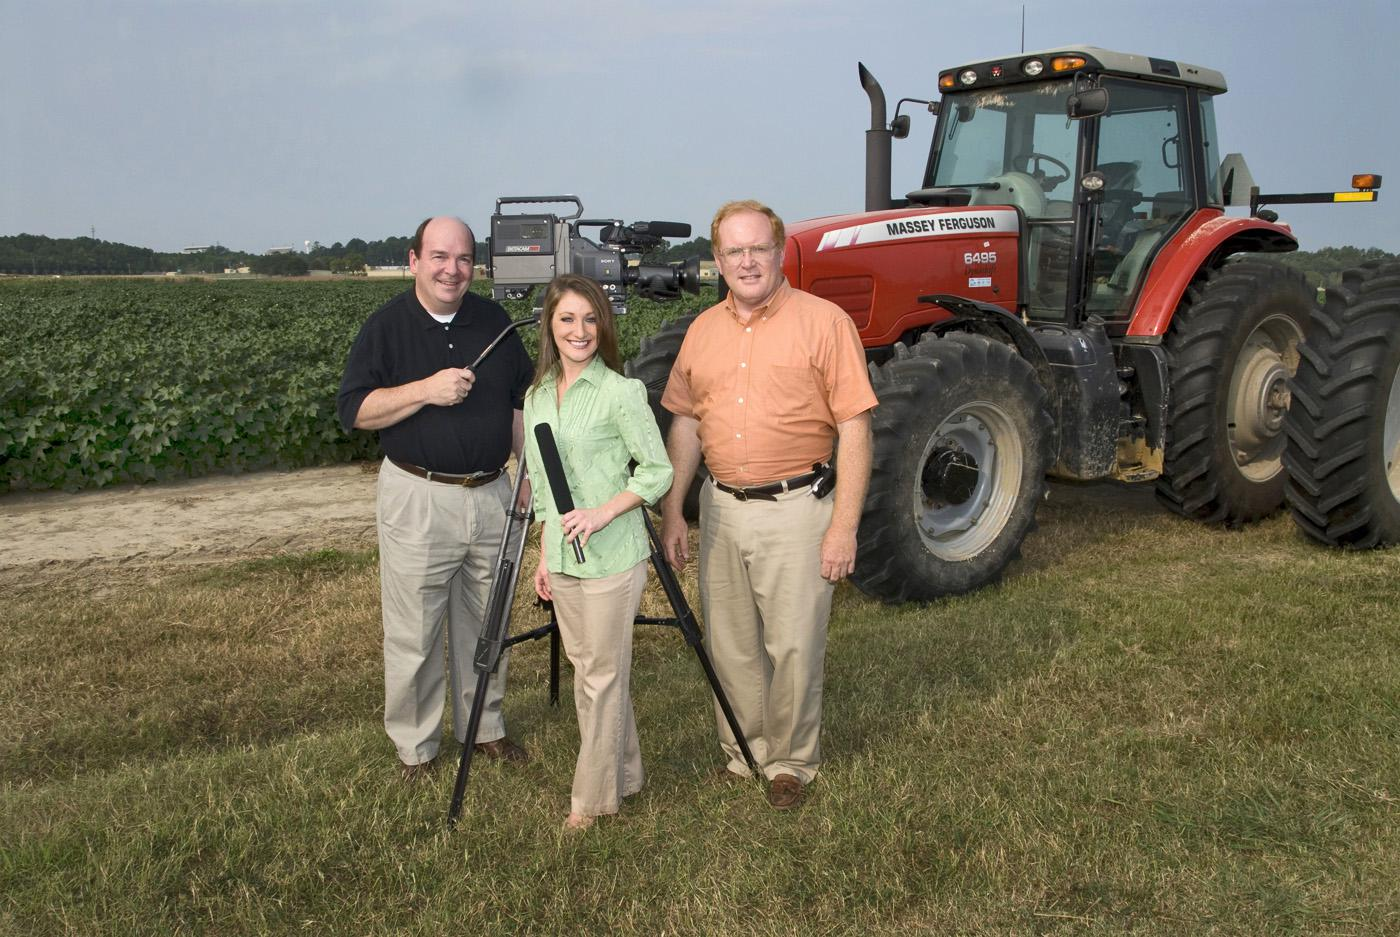 The current Farmweek team includes Leighton Spann, left, Amy Taylor and Artis Ford. (Photo by Marco Nicovich)